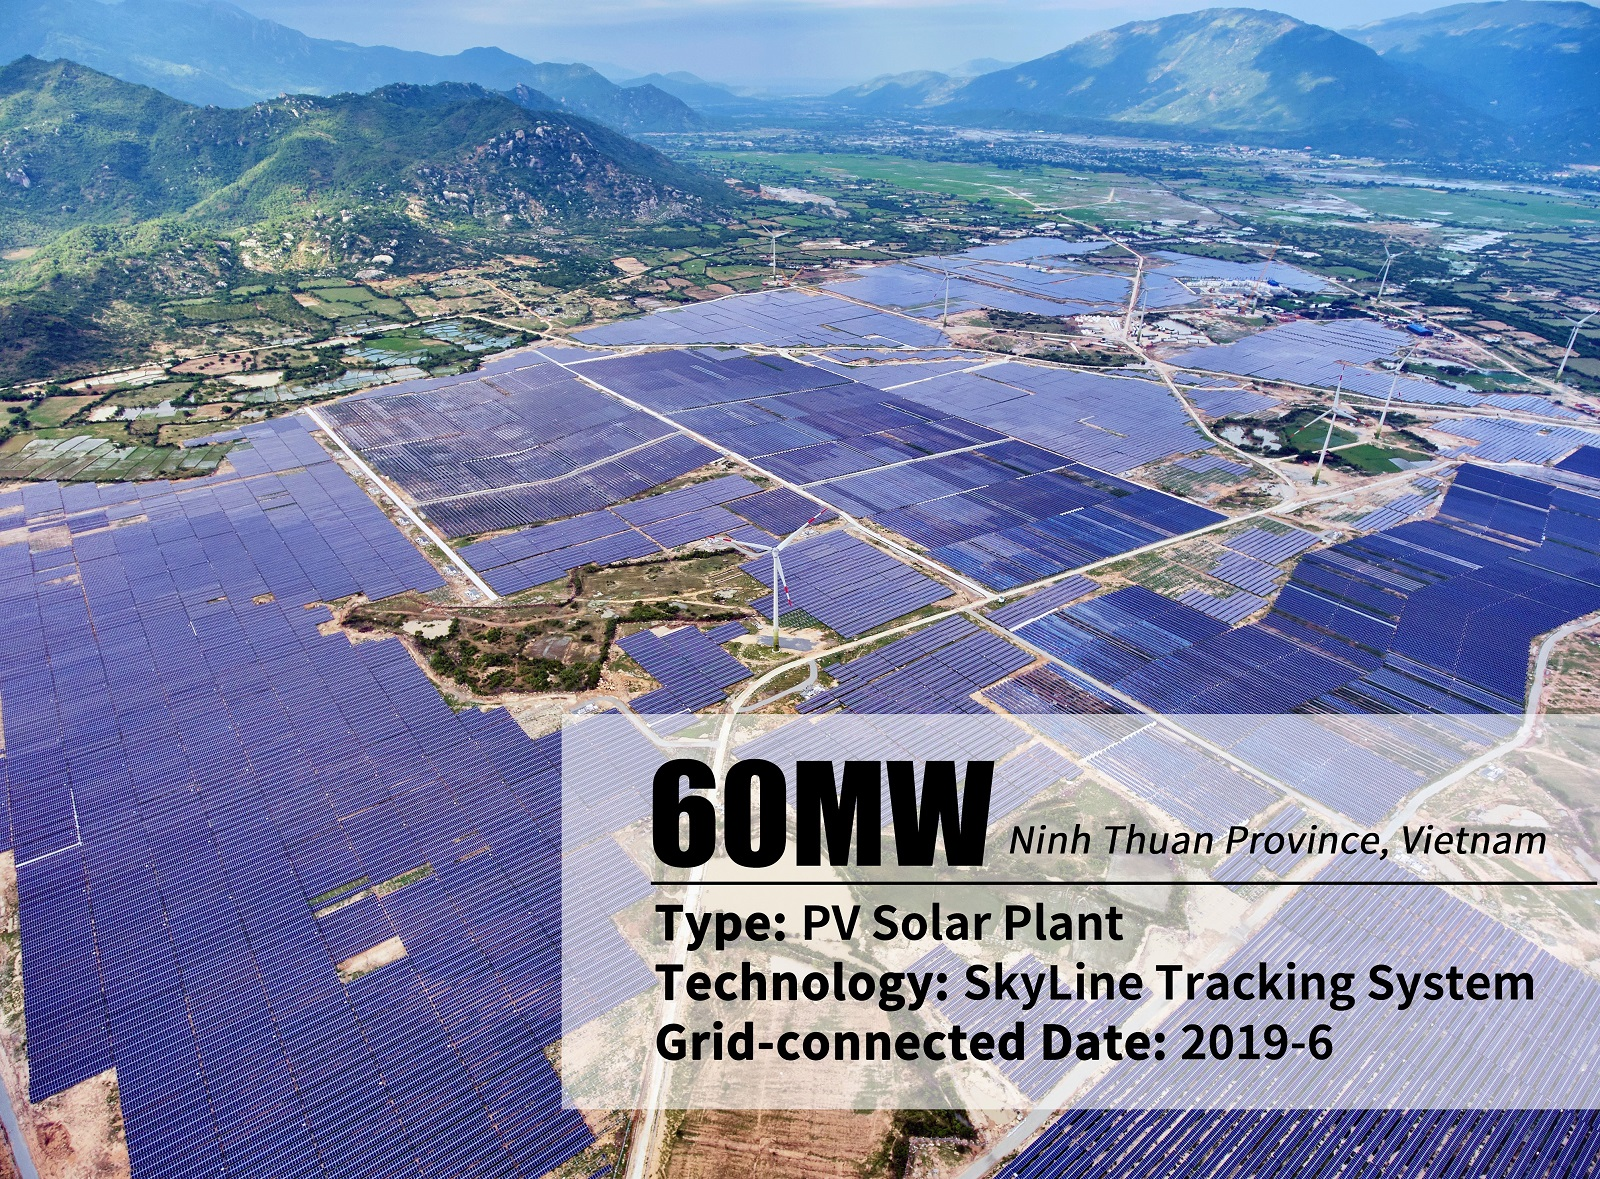 Arctech Solar supplying 60MW Skyline Tracking System to Trungnam Group project